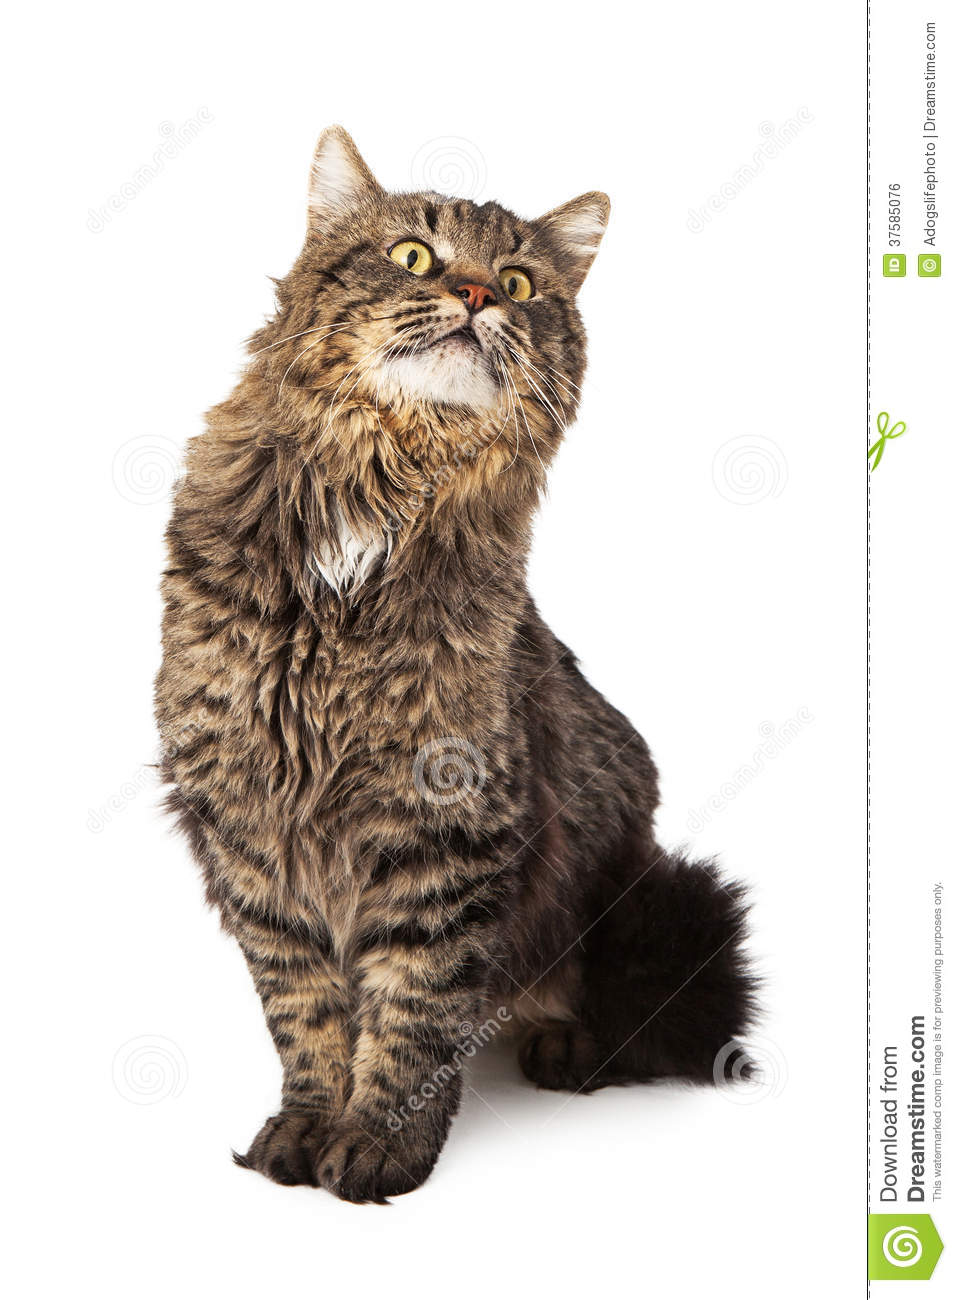 Long Haired Tabby Cat Sitting Looking Up Stock Photo ... Tabby Cat Sitting Up